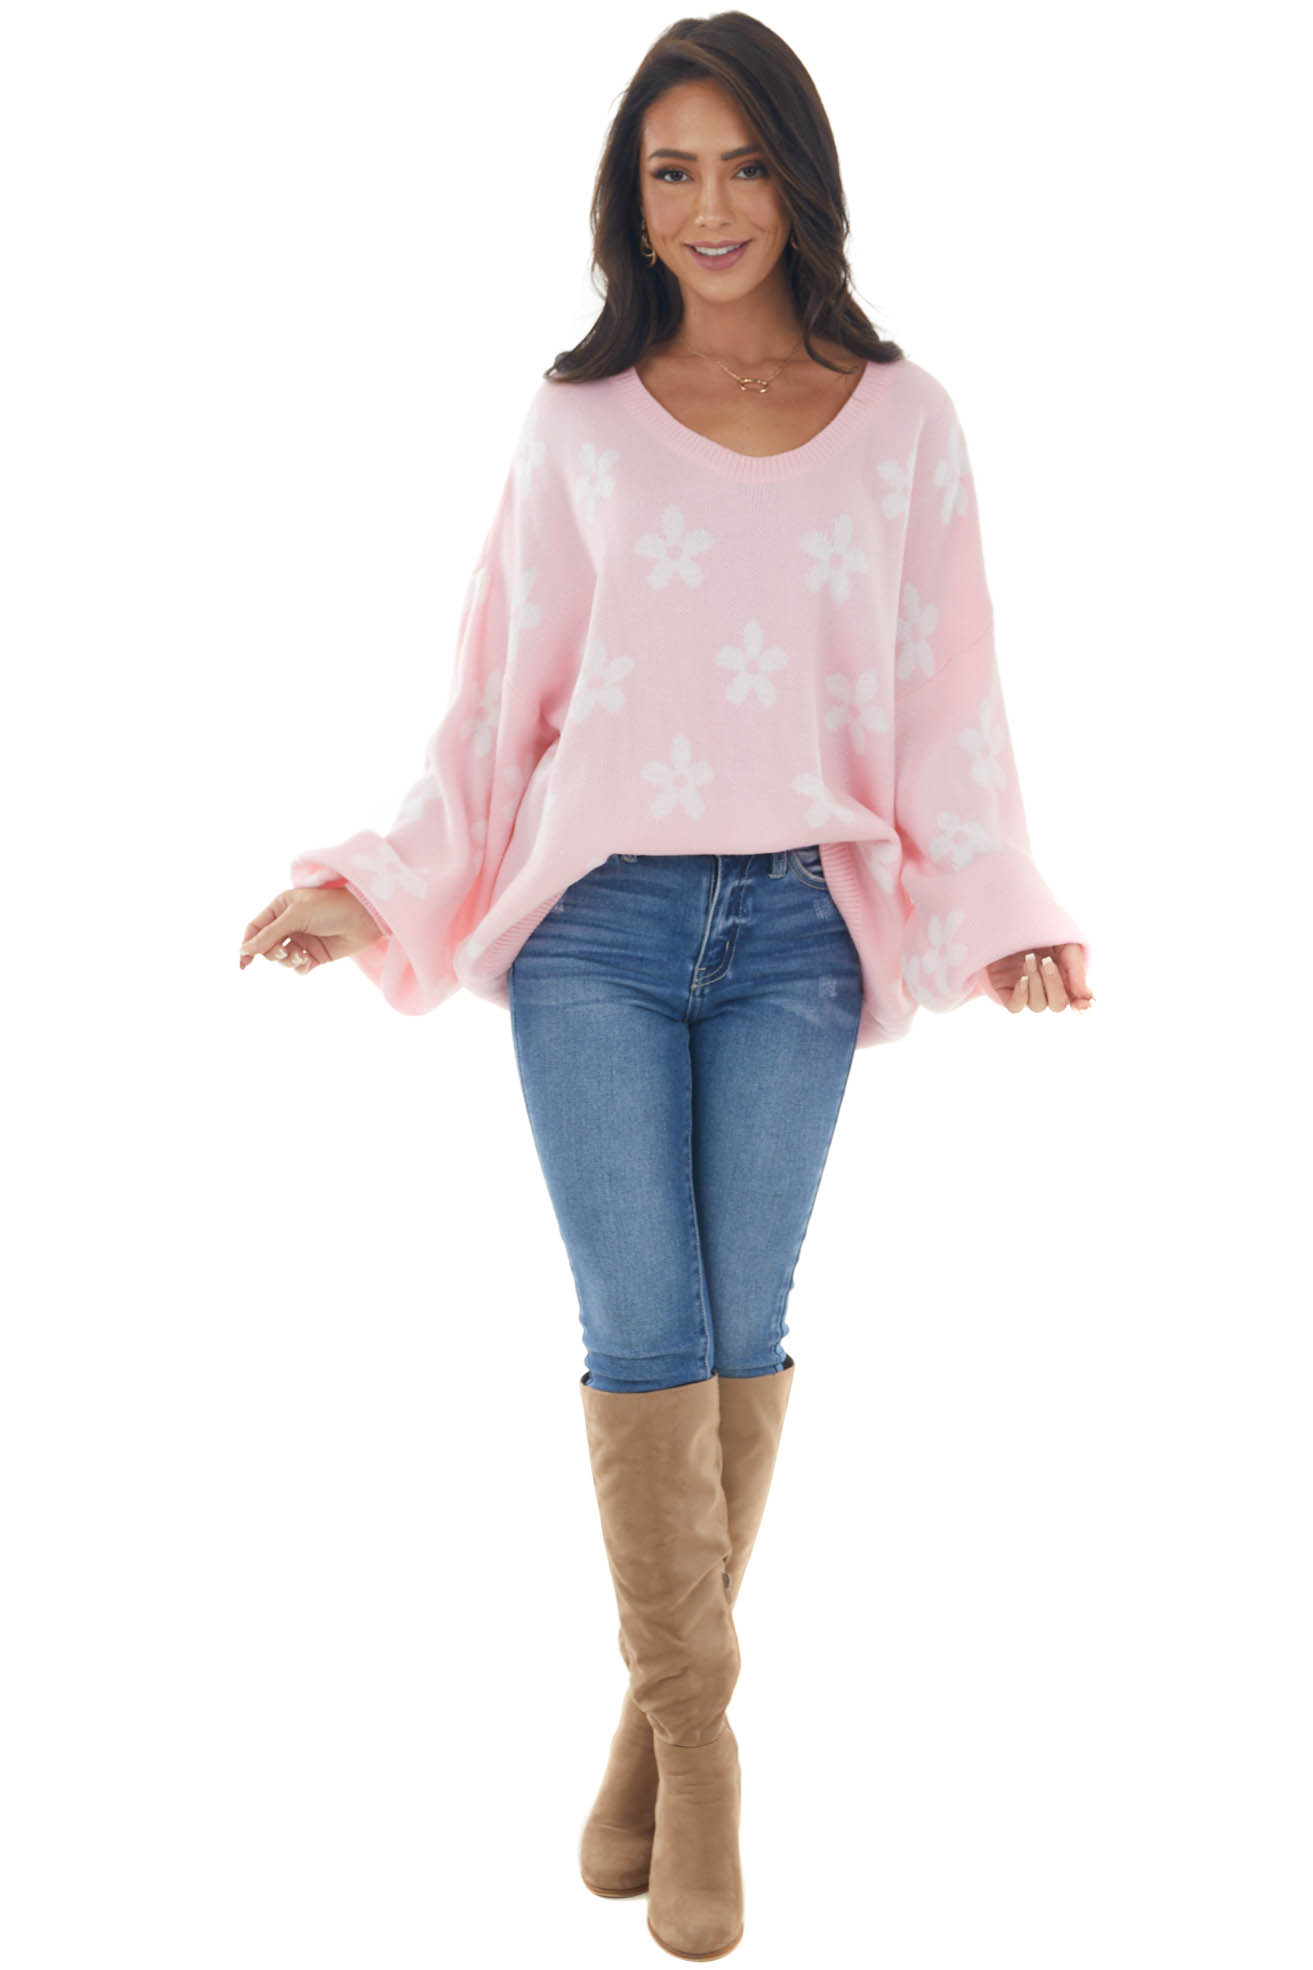 Cherry Blossom and Ivory Daisy Print Sweater